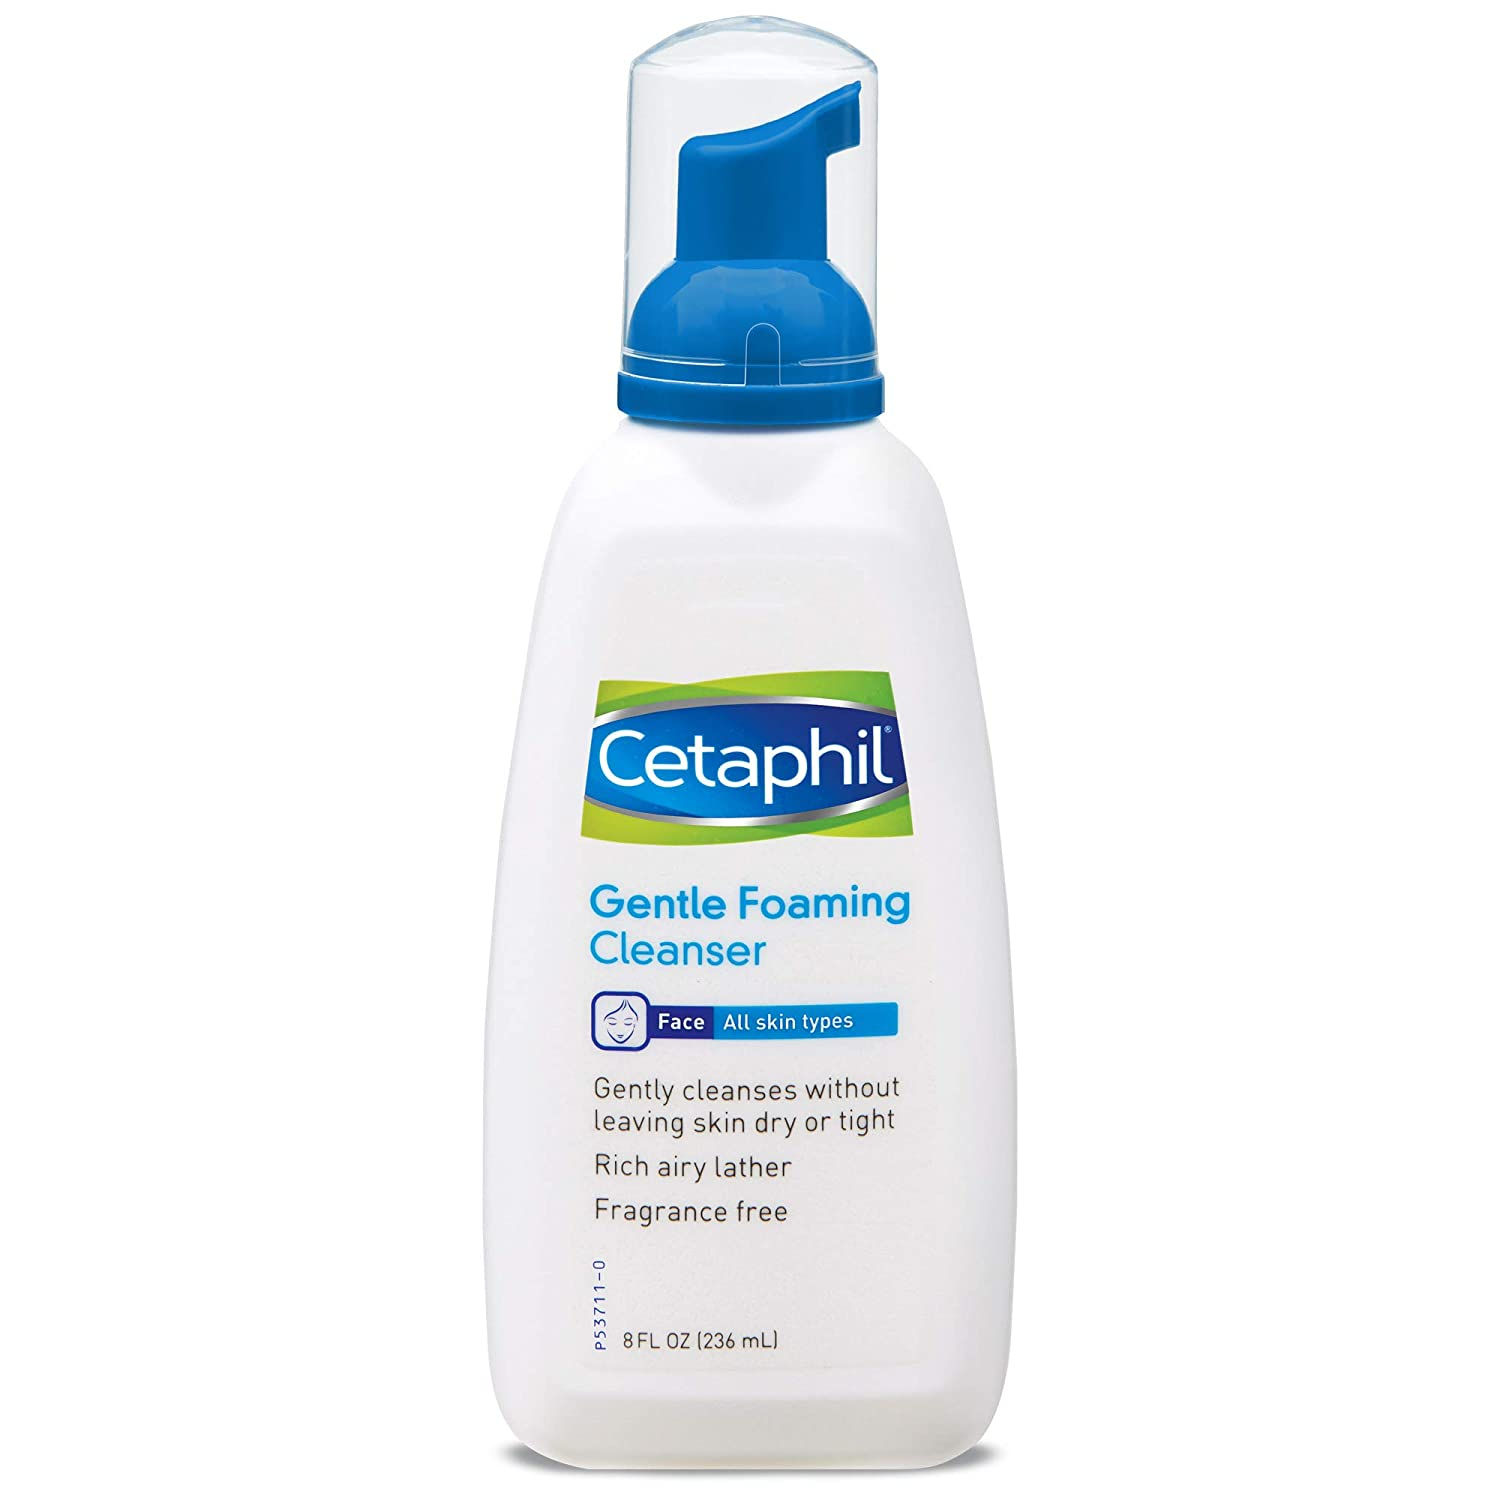 Gentle Foaming Cleanser (Pack of 2) - Gently Cleanses without Leaving Skin Dry or Tight - Rich Airy Lather - For All Skin Types - Fragrance Free & Suitable For Sensitive Skin 8oz